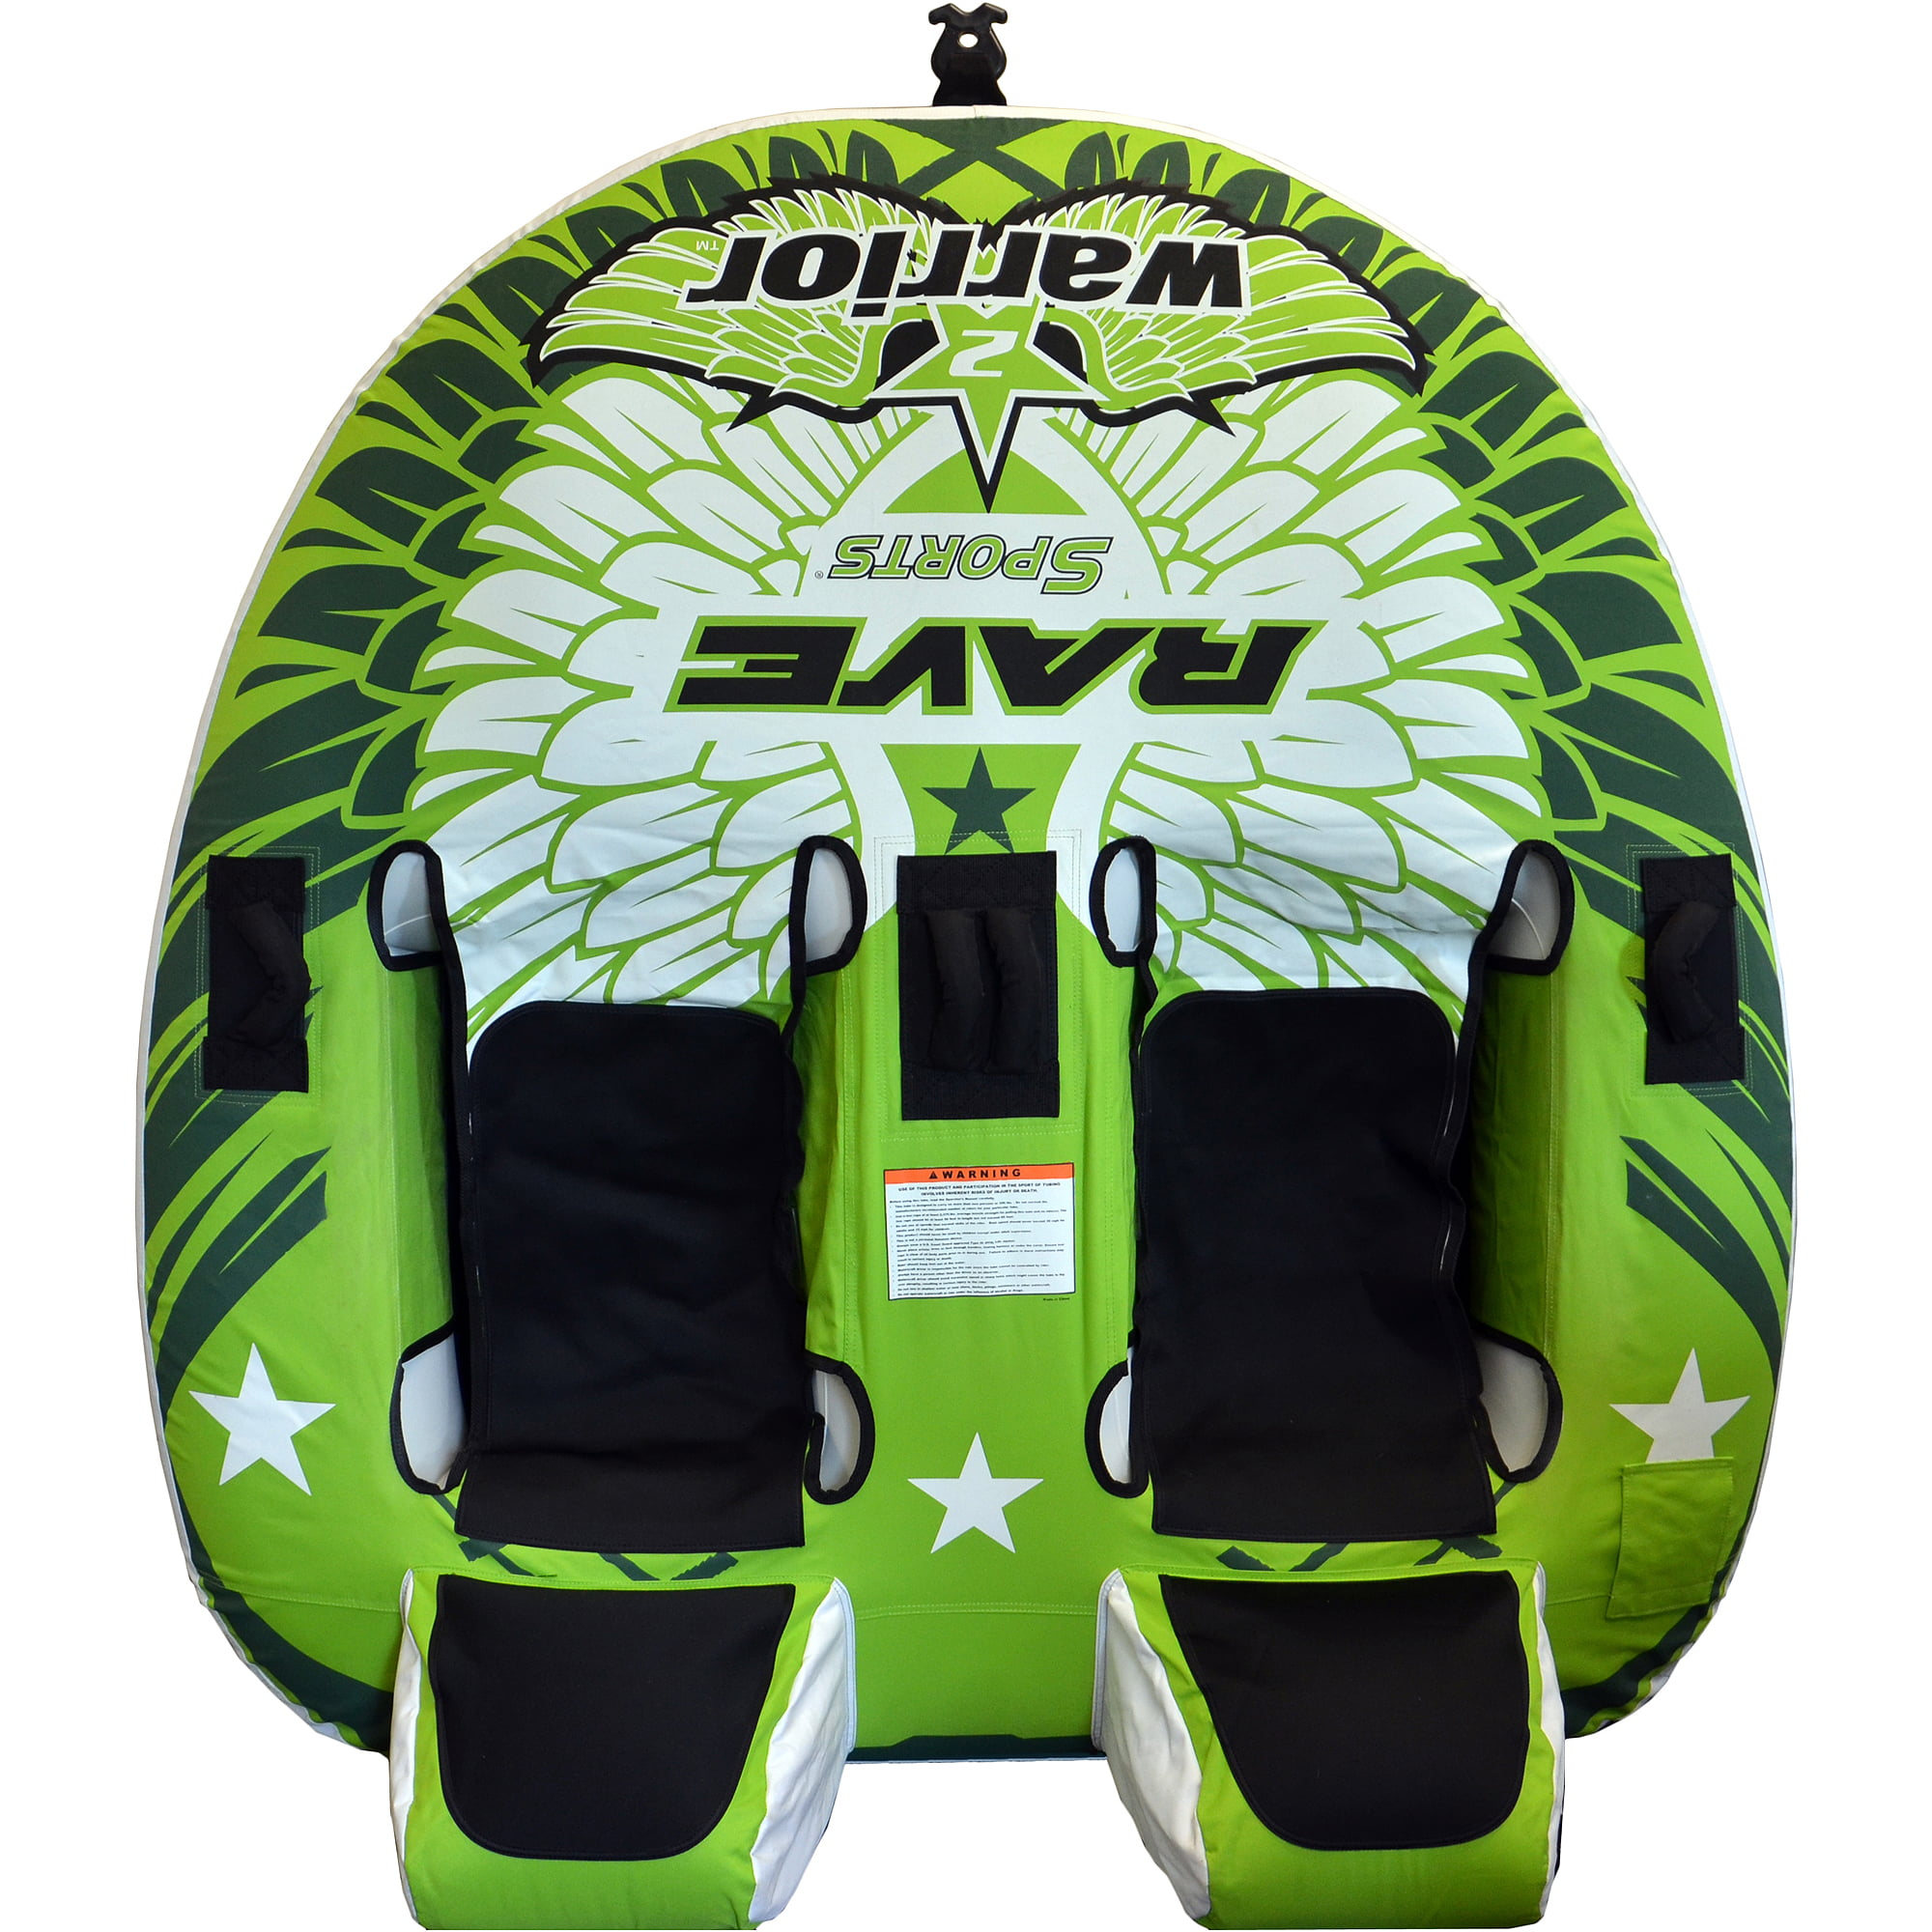 Rave Sports Warrior 2-Rider Sit-On-Top Design Towable by Rave Sports